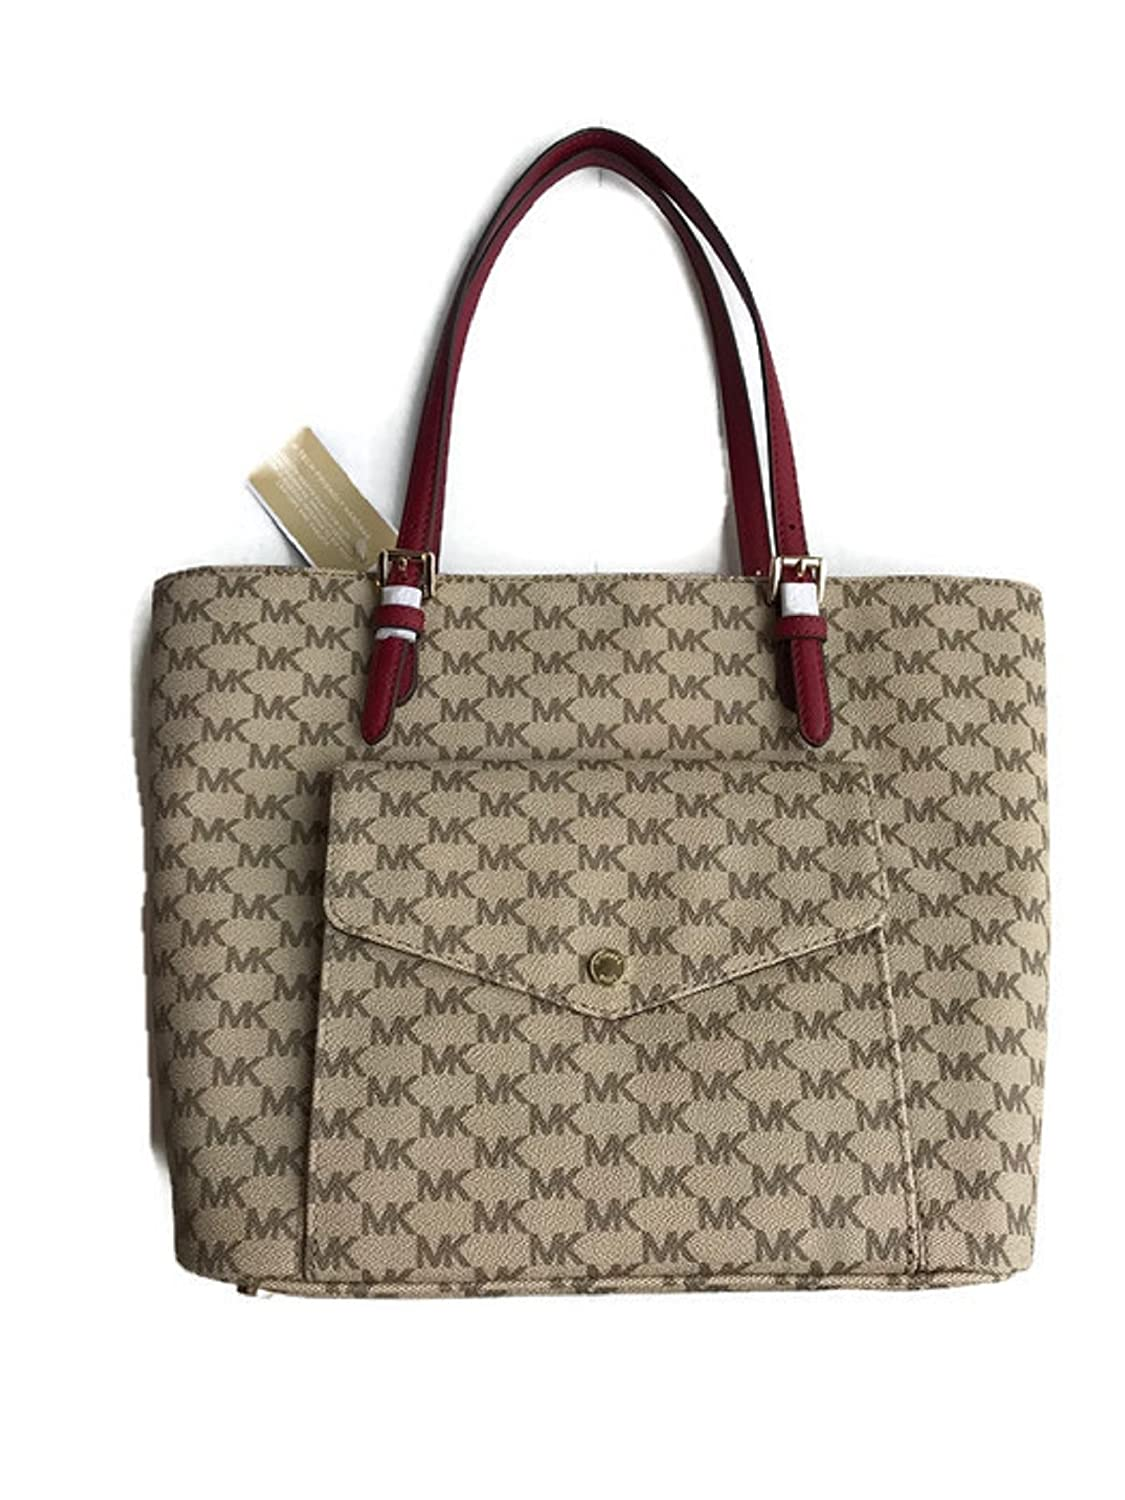 5482e2855c81 Amazon.com  Michael Michael Kors Logo Jet Set Large Multi Function Pocket  Front Leather Tote Bag Natural   Cherry  Shoes